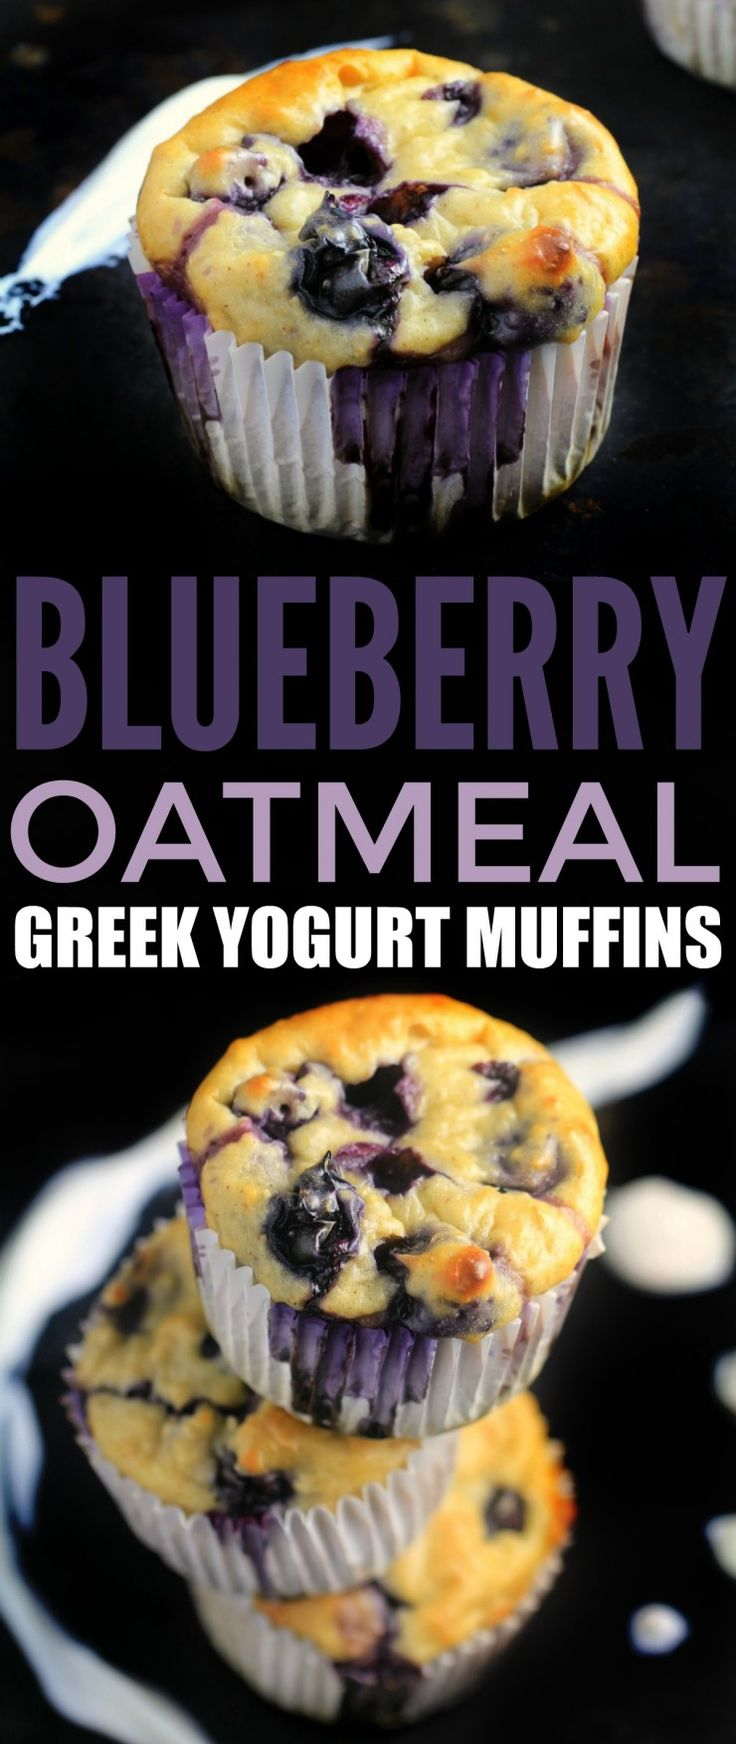 These Blueberry Oatmeal Greek Yogurt Muffins are bursting with blueberries and…